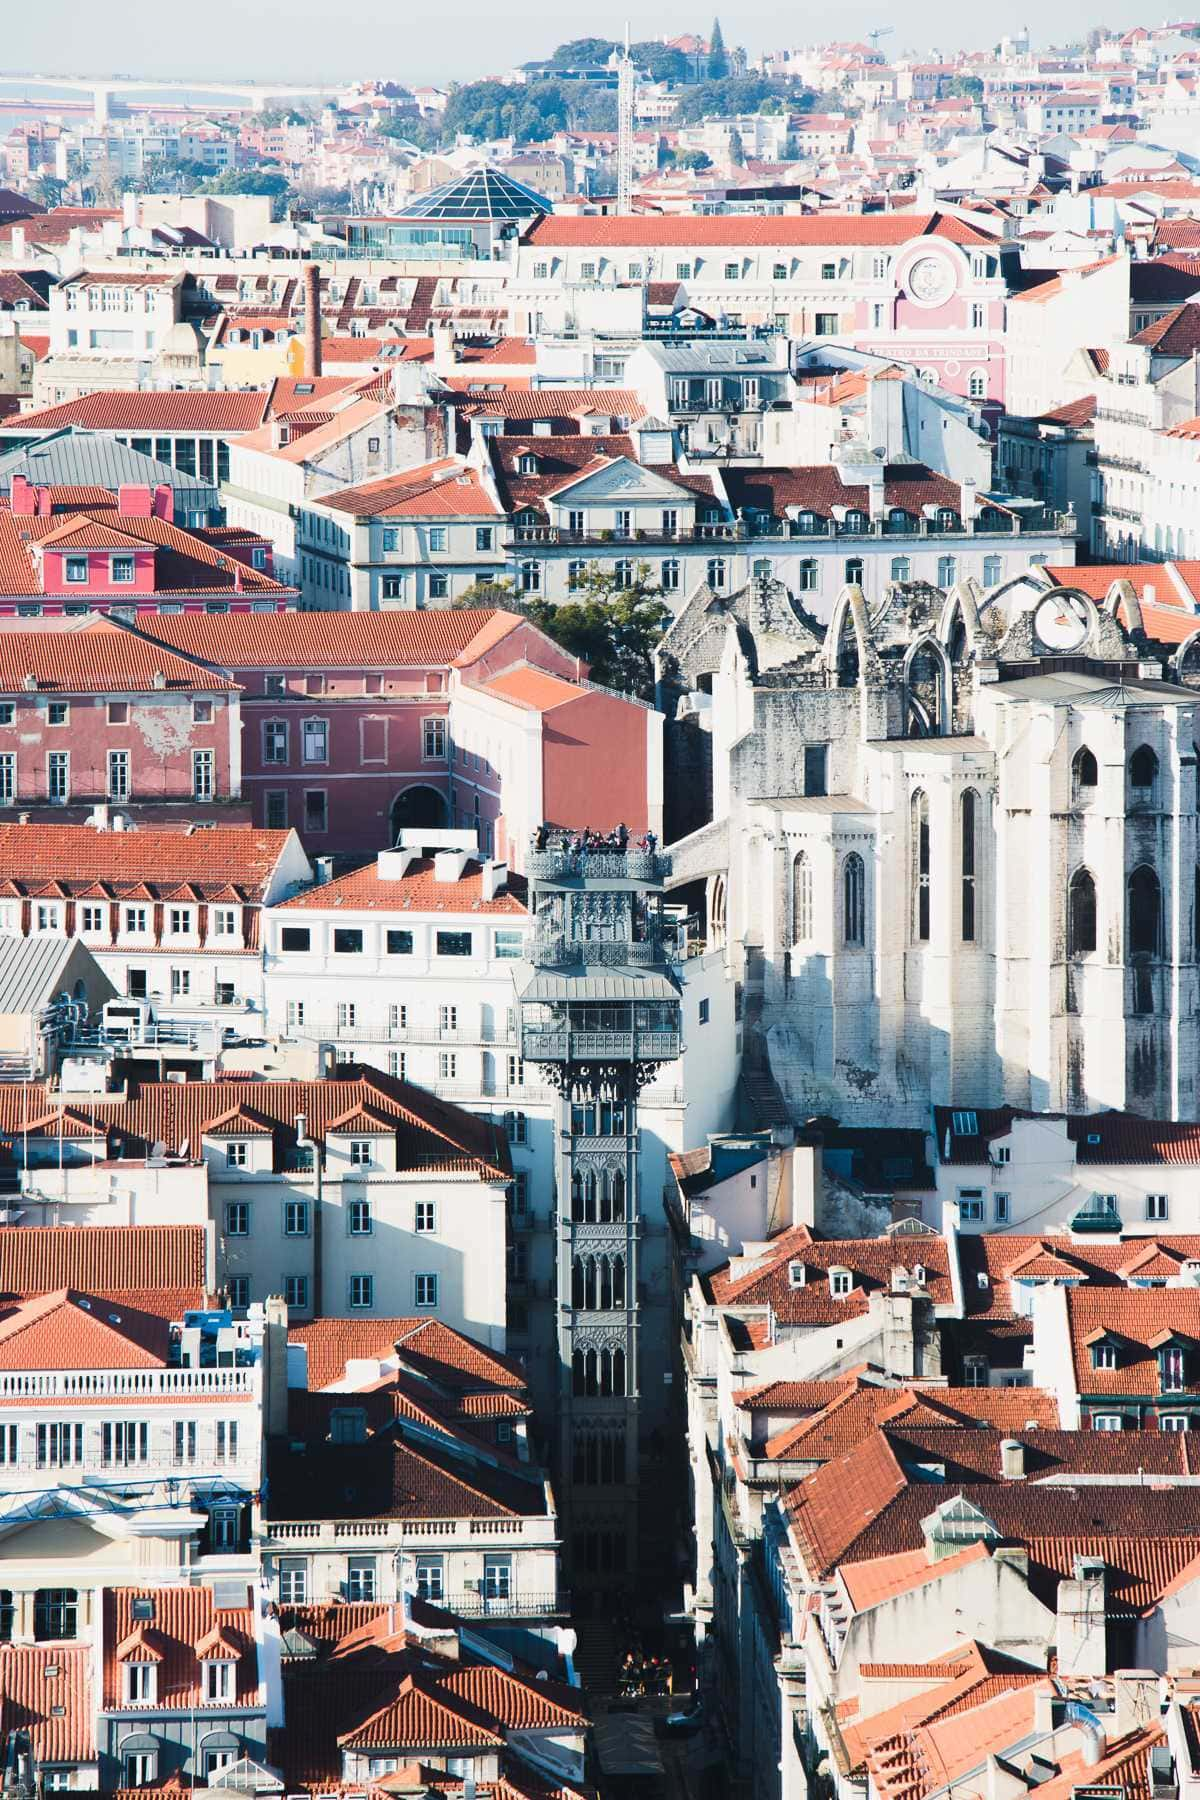 Elevador do Carmo und Chiado in Lissabon